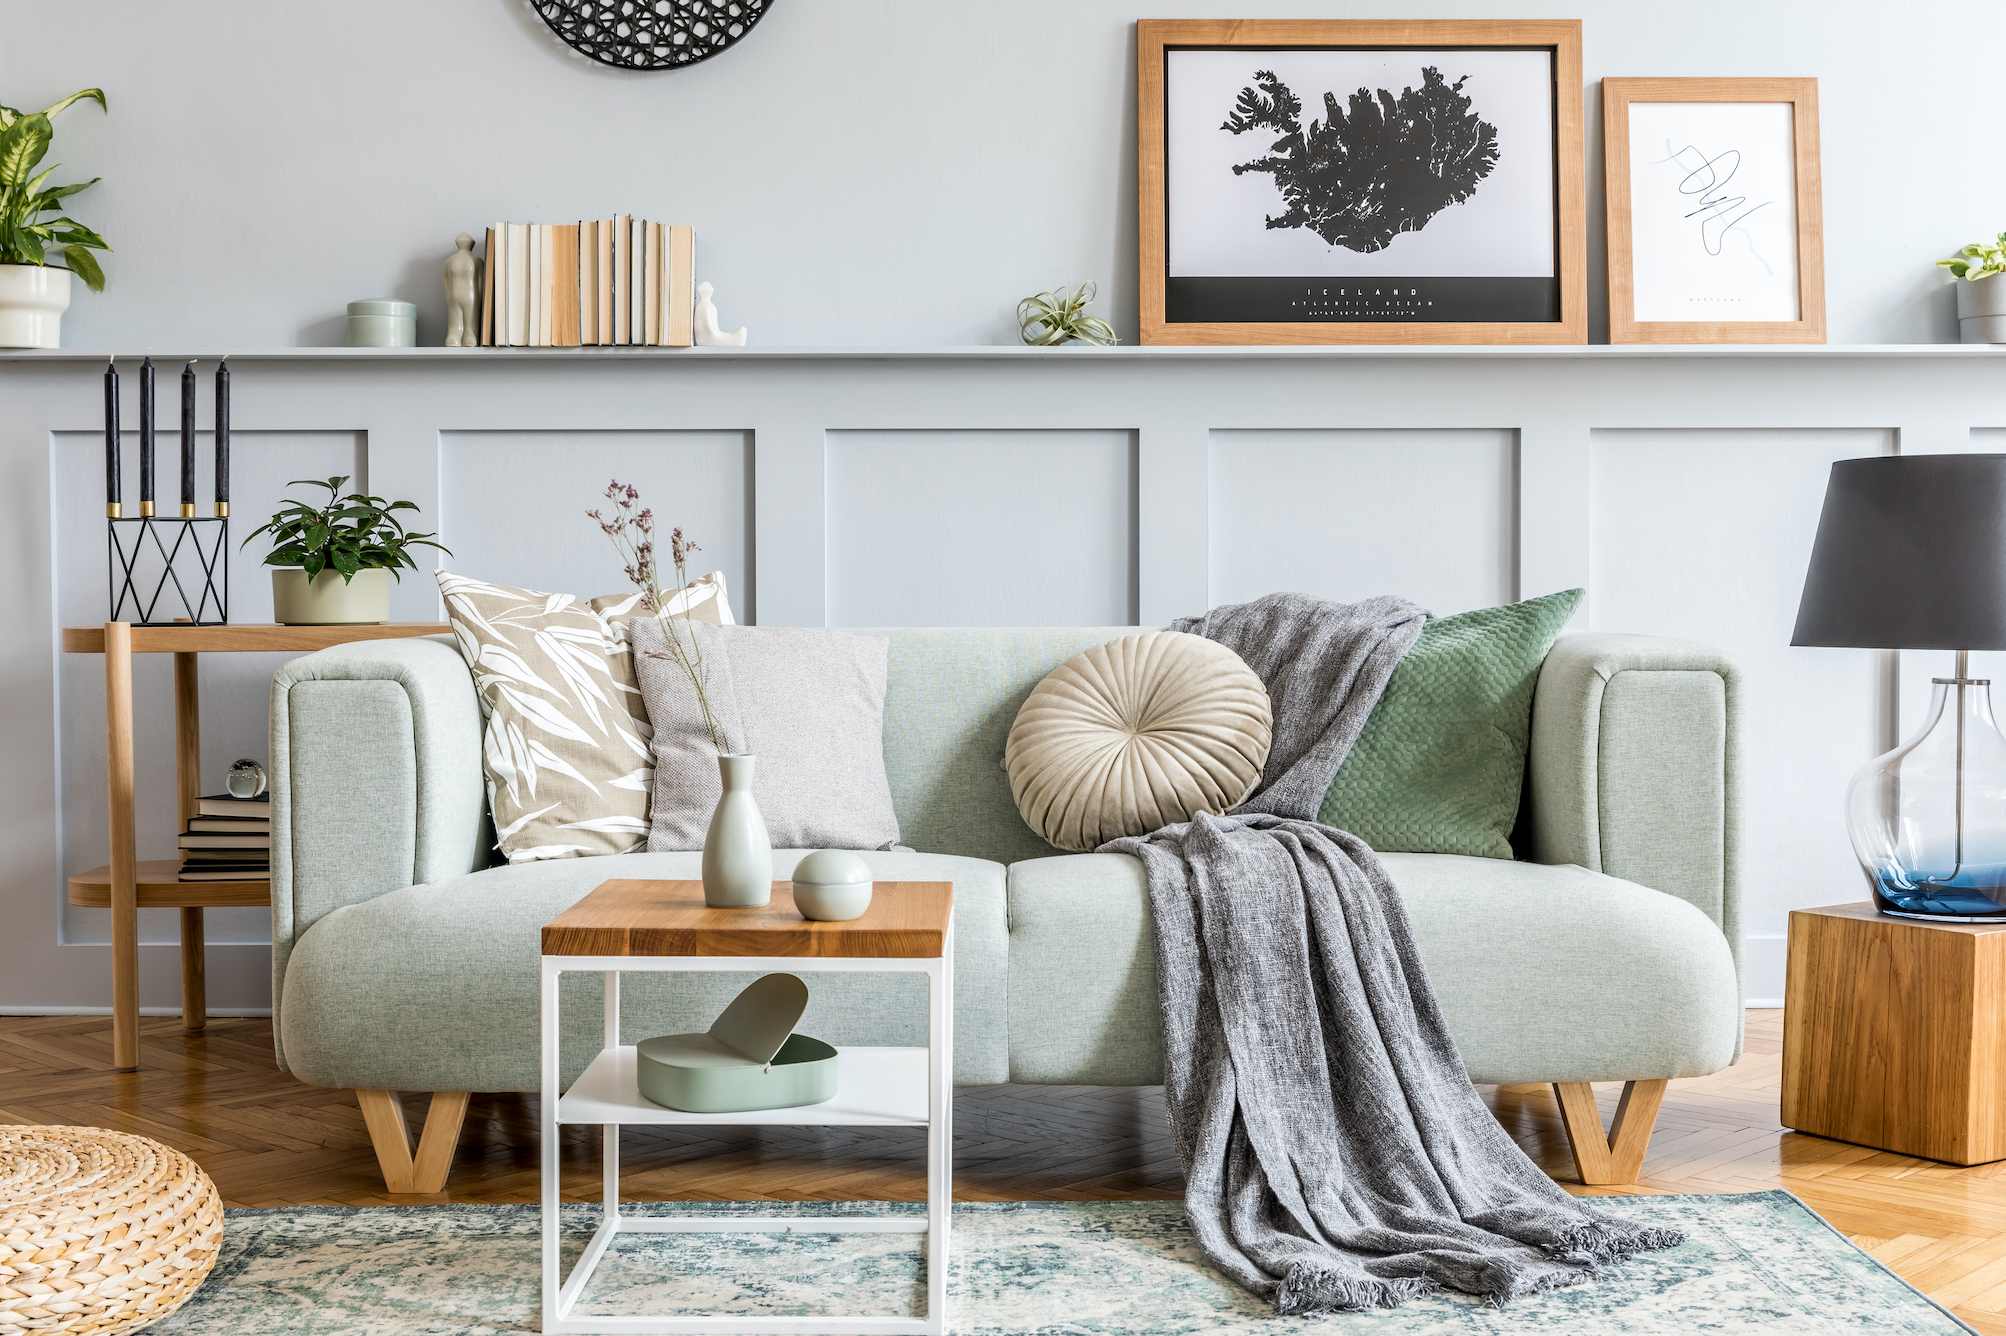 Home decor brand reflects customers individuality with their top quality and budget-friendly home products